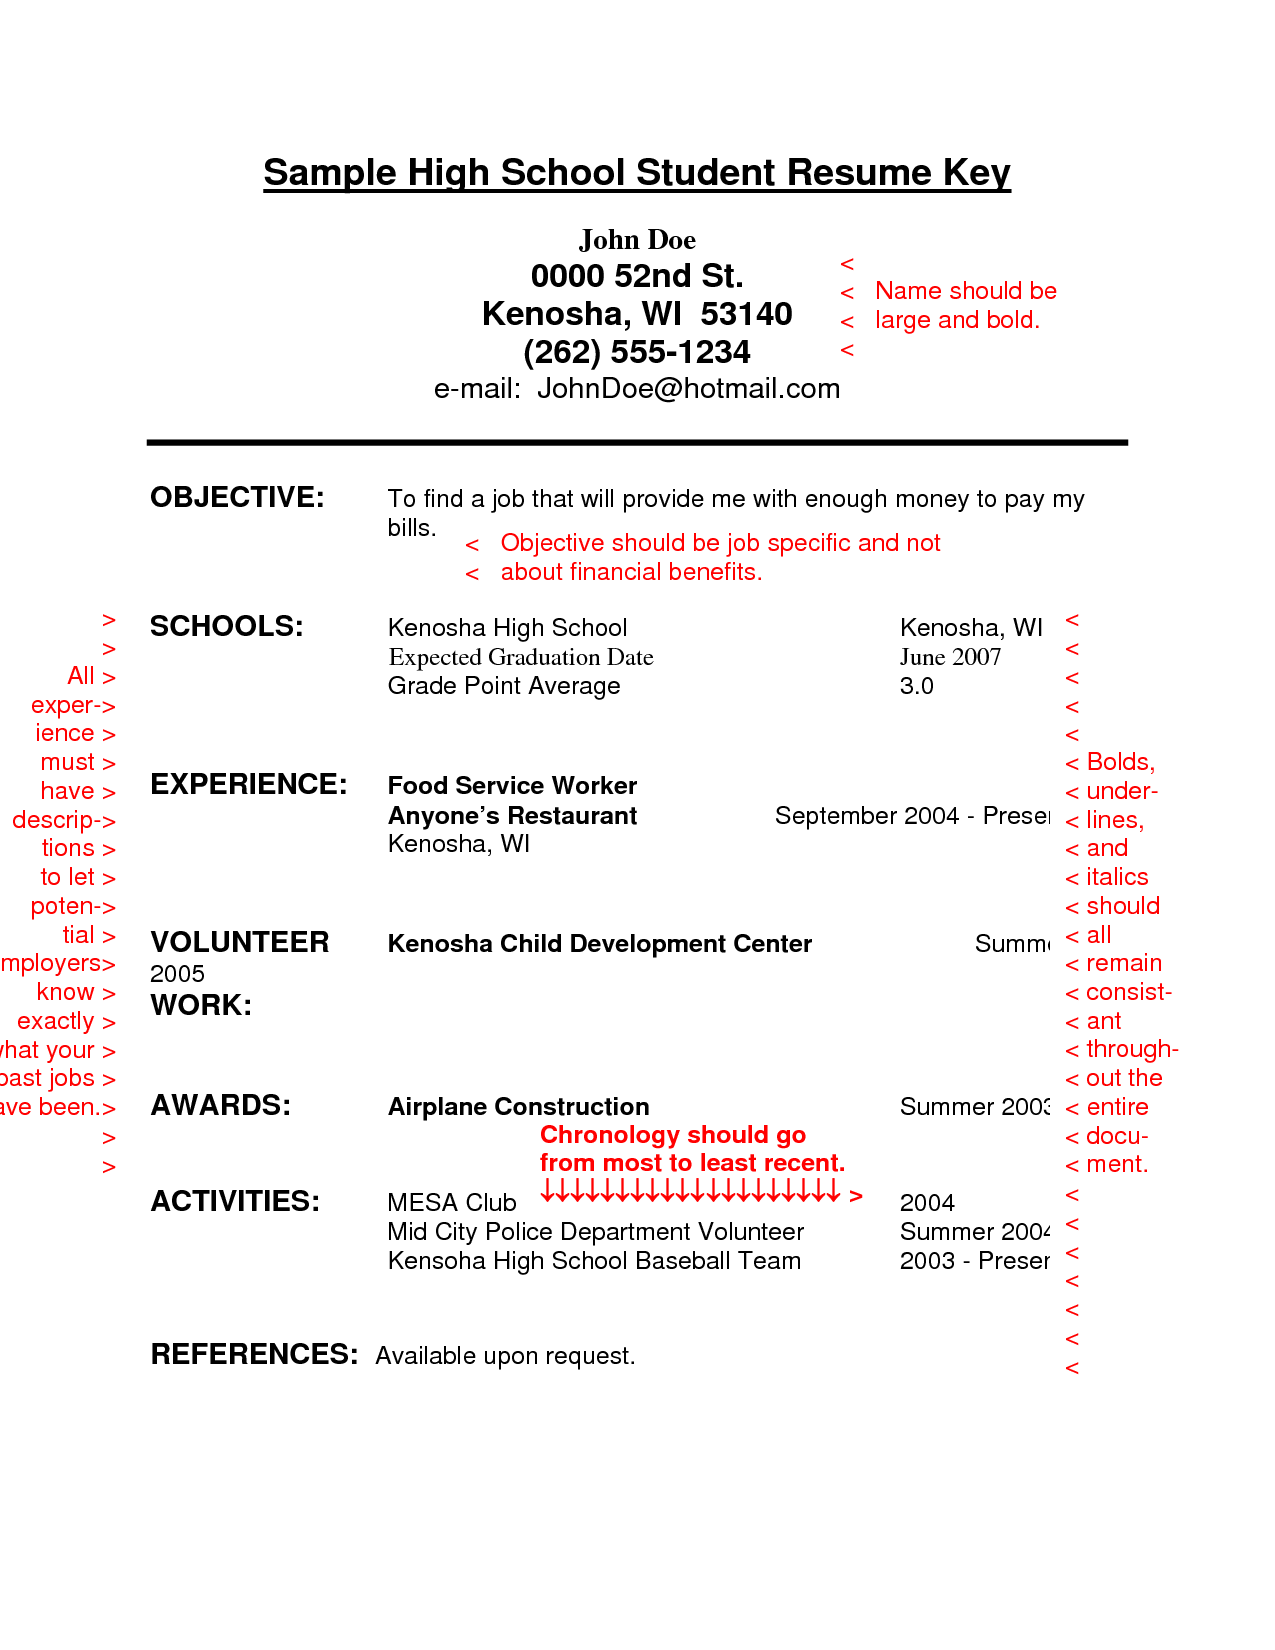 Resume sample for high school student goalblockety resume altavistaventures